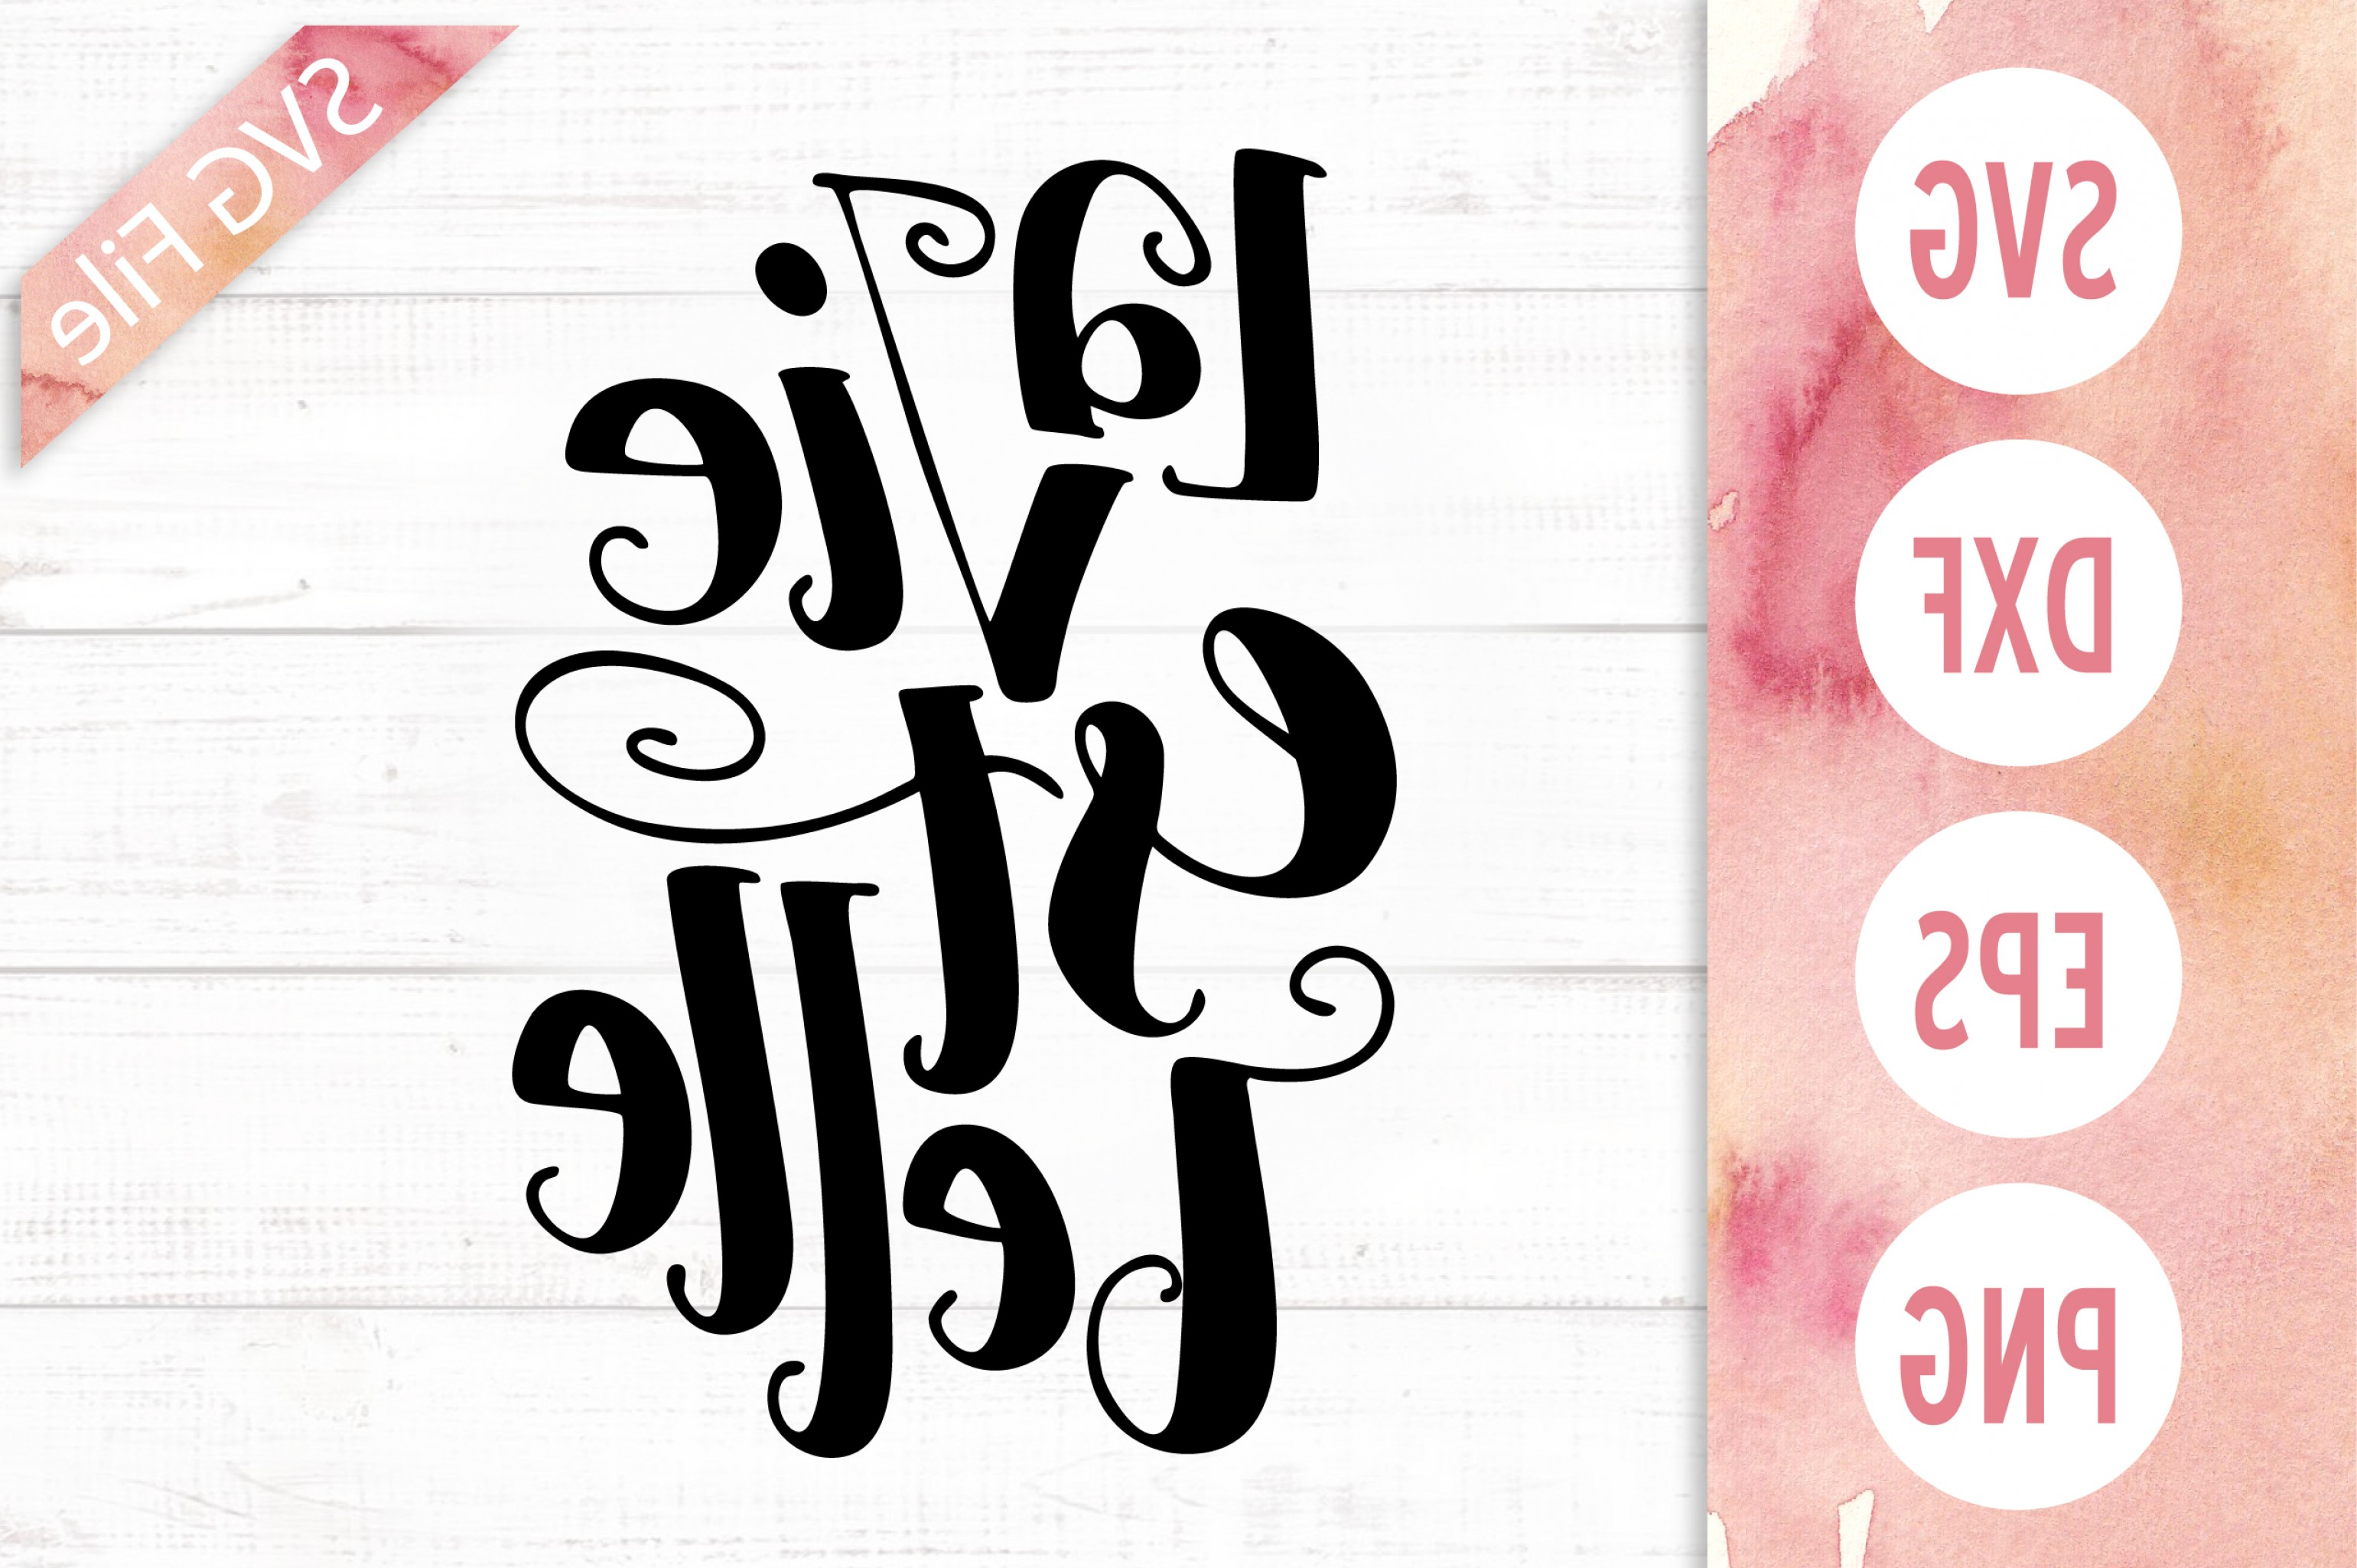 Belle EPS File Vector Art: La Vie Est Belle Svg Dxf Png Eps Life Is Beautiful